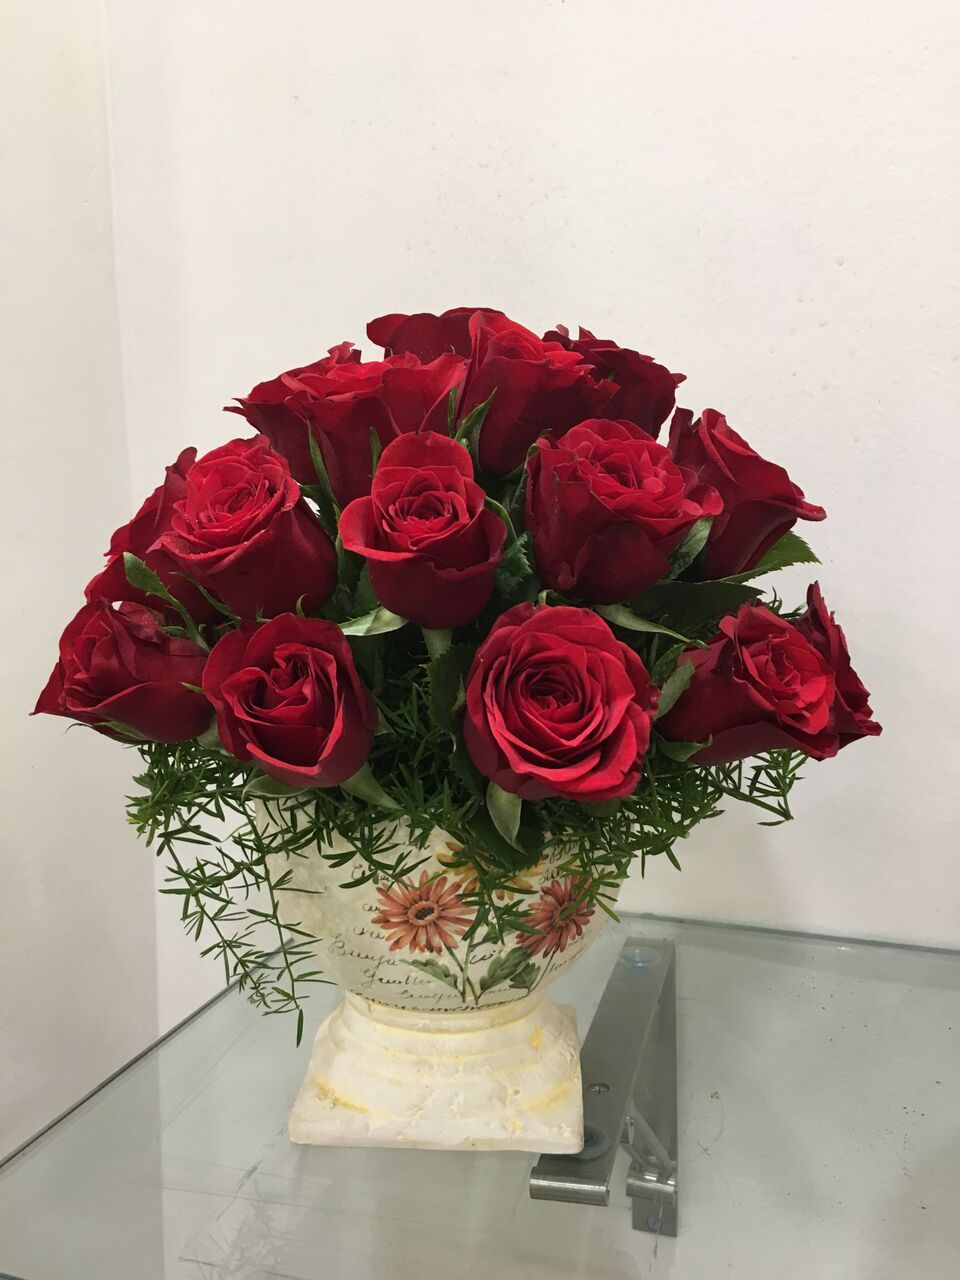 Looking for romantic flowers? Roses are the description